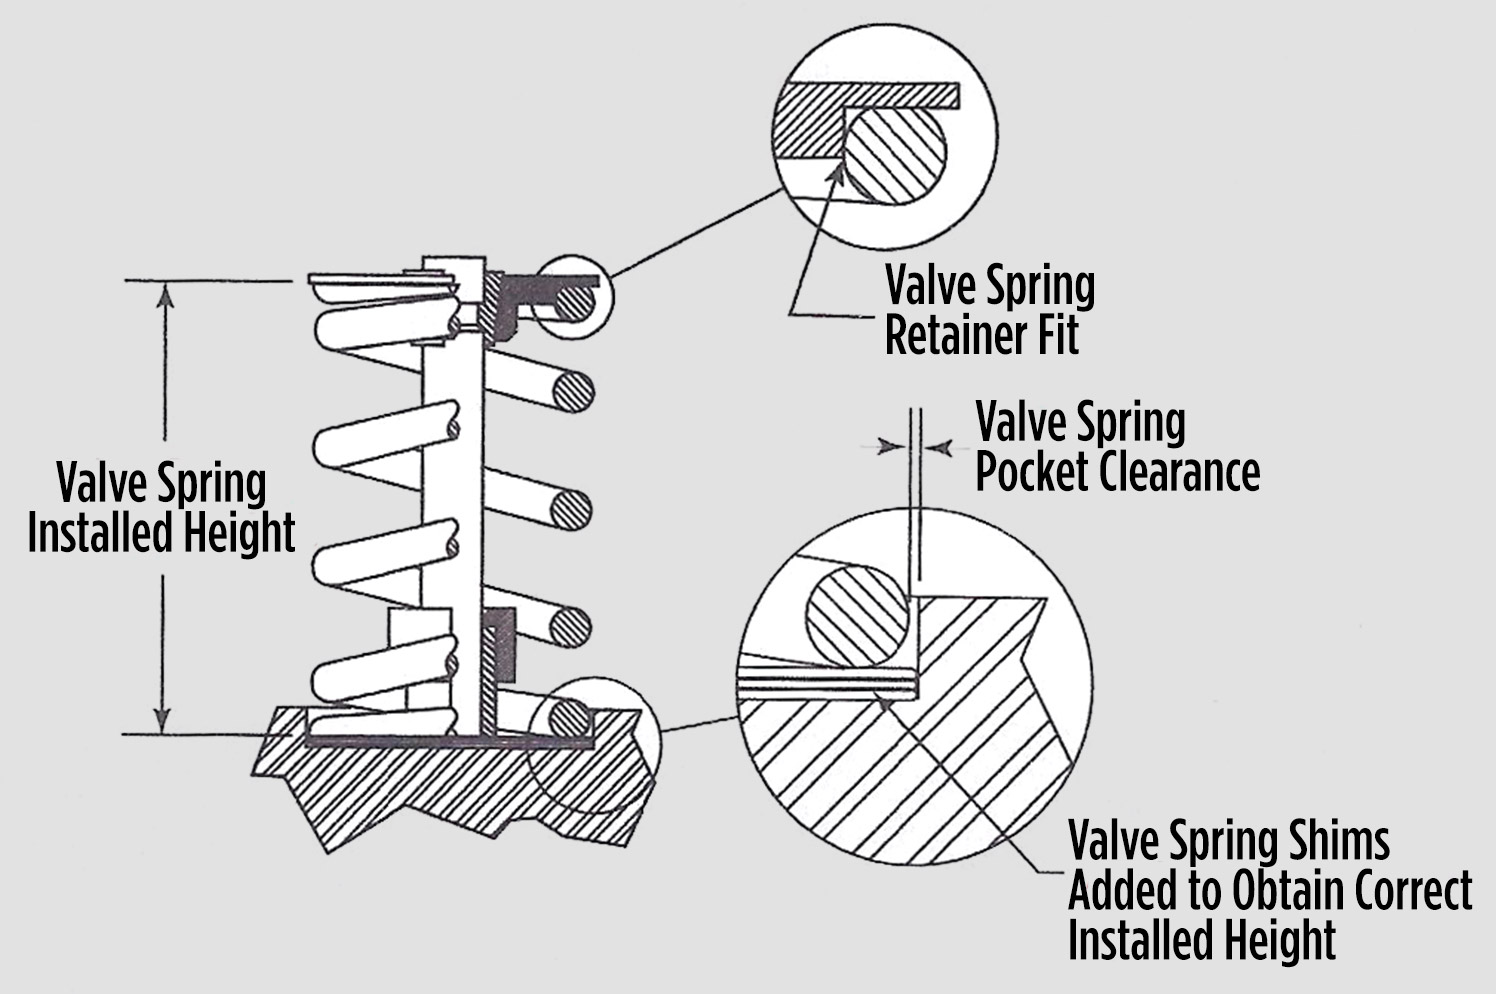 If insufficient clearance exists between pocket wall and spring, you need to machine the pocket with a spring seat cutter to prevent binding. By contrast, excessive clearance between the pocket wall and the spring provokes unwanted, harmful movement.